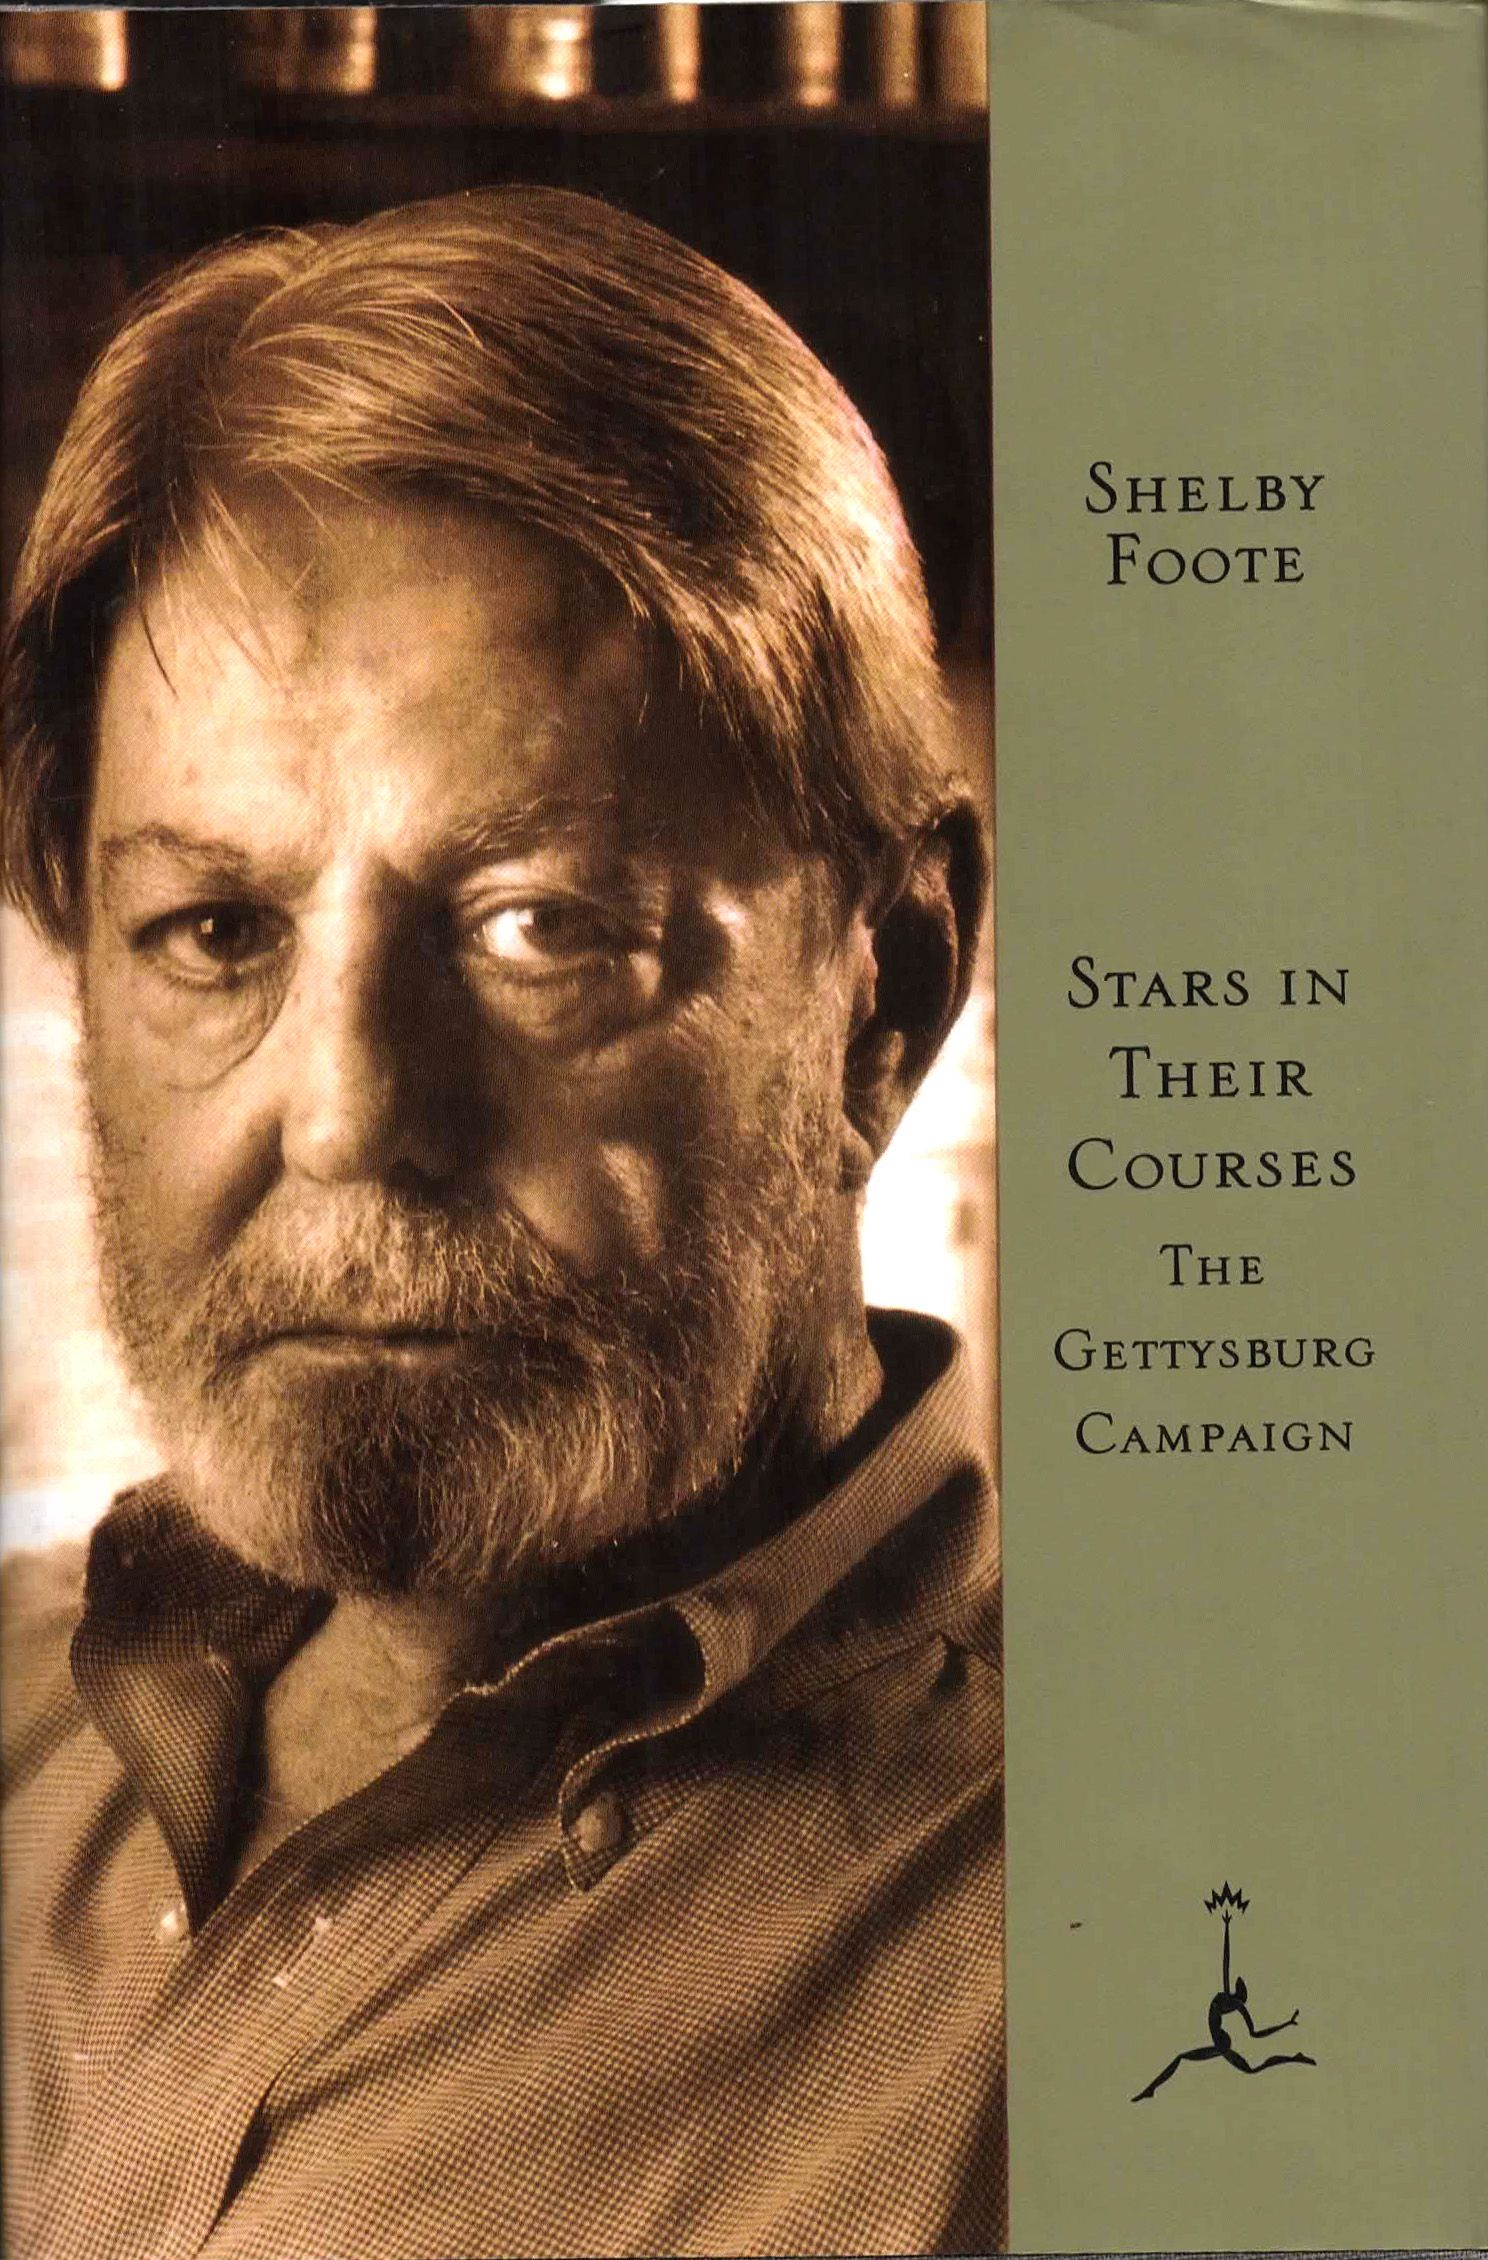 Stars In Their Courses The Gettysburg Campaign By Shelby Foote Modern Library Edition 1994 A Classy Under Sized Hard Shelby Foote Gettysburg Modern Library